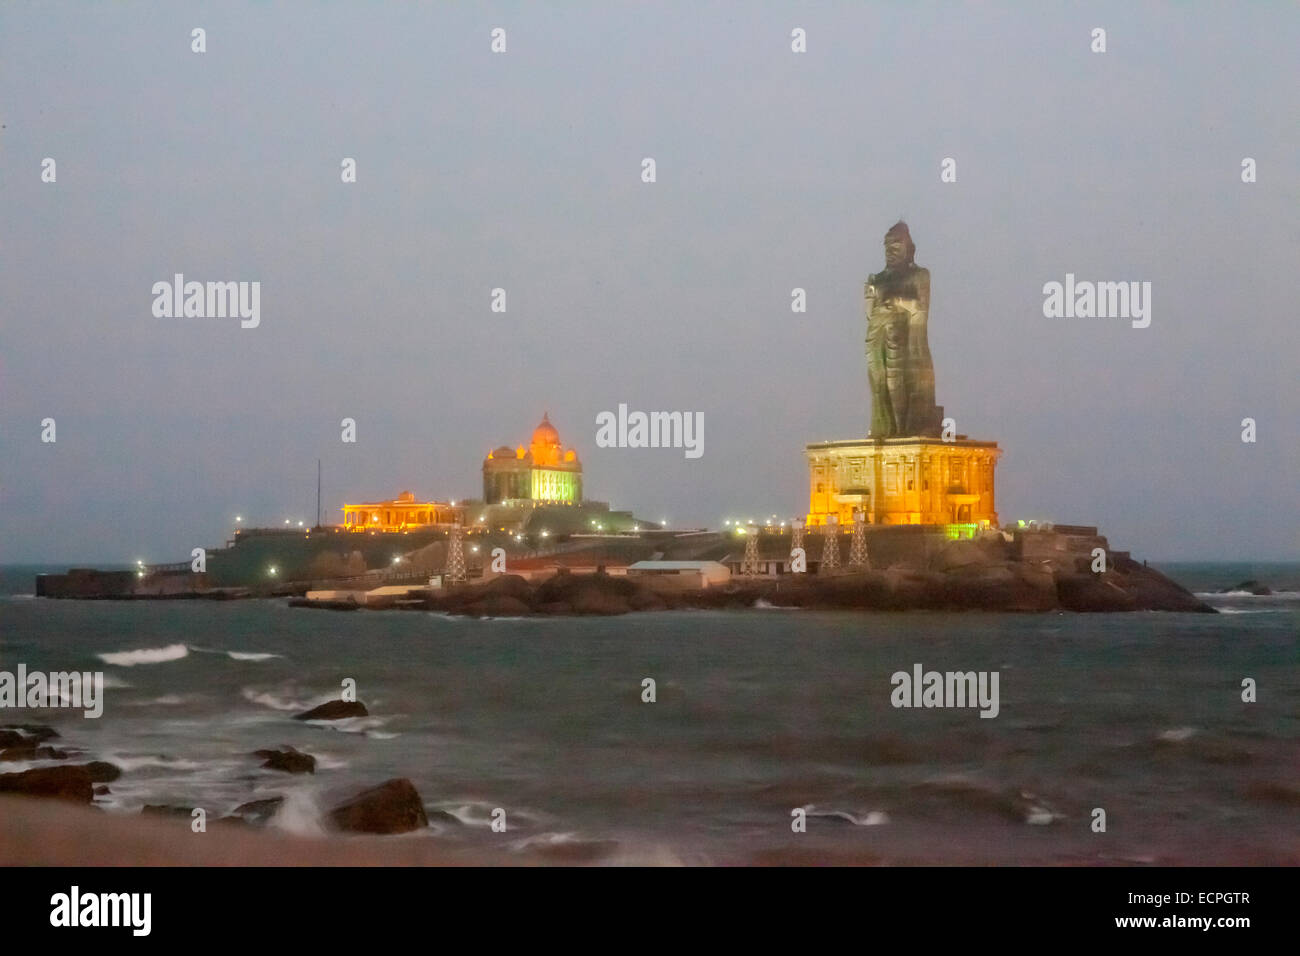 Kanyakumari, formerly known as Cape Comorin, is a town in Kanyakumari District in the state of Tamil Nadu in India. - Stock Image